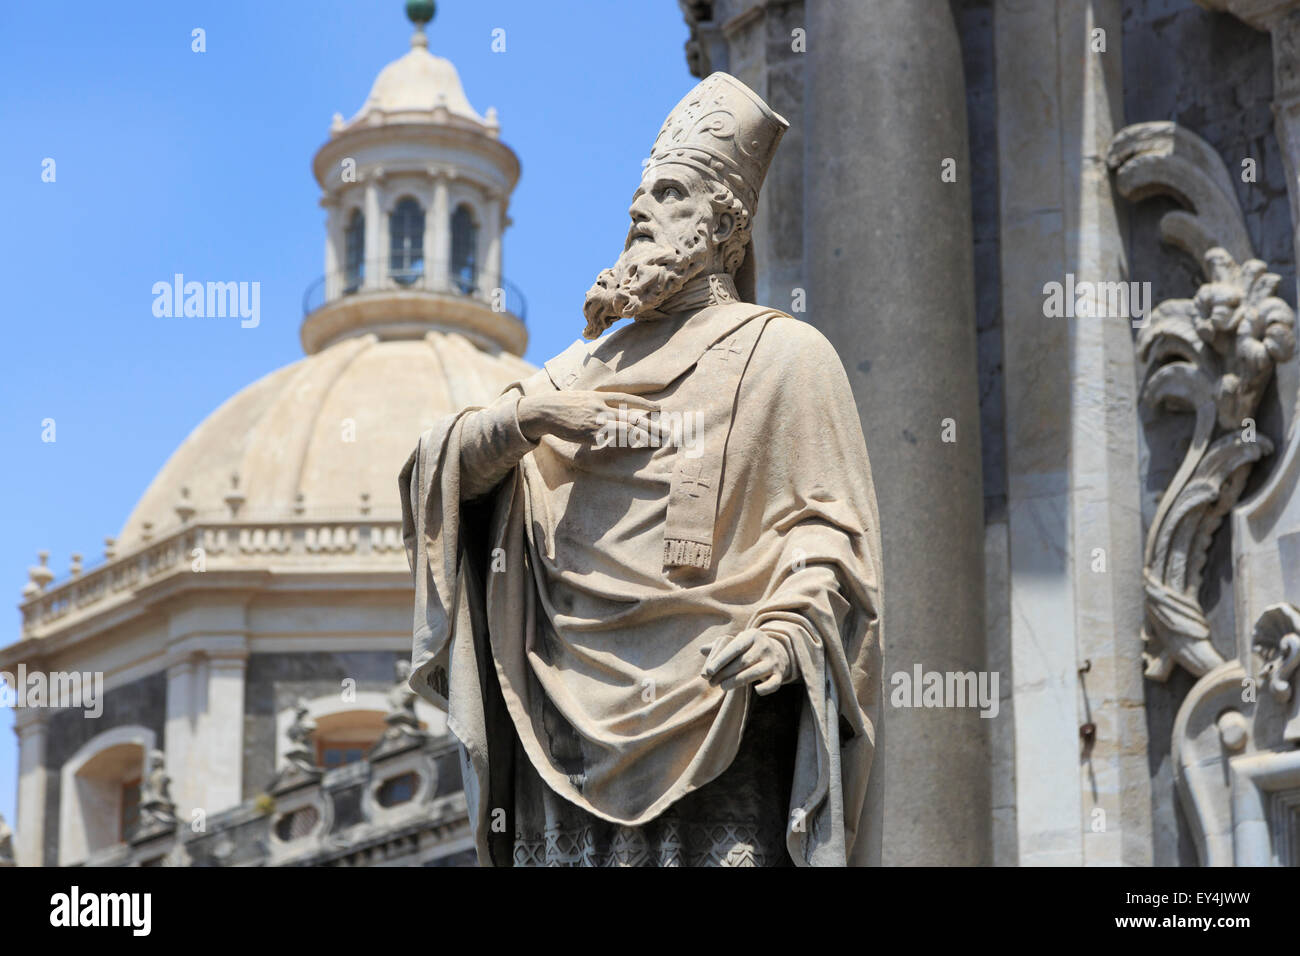 Canapé Italien St Priest Via Etnea Stock Photos And Via Etnea Stock Images Alamy